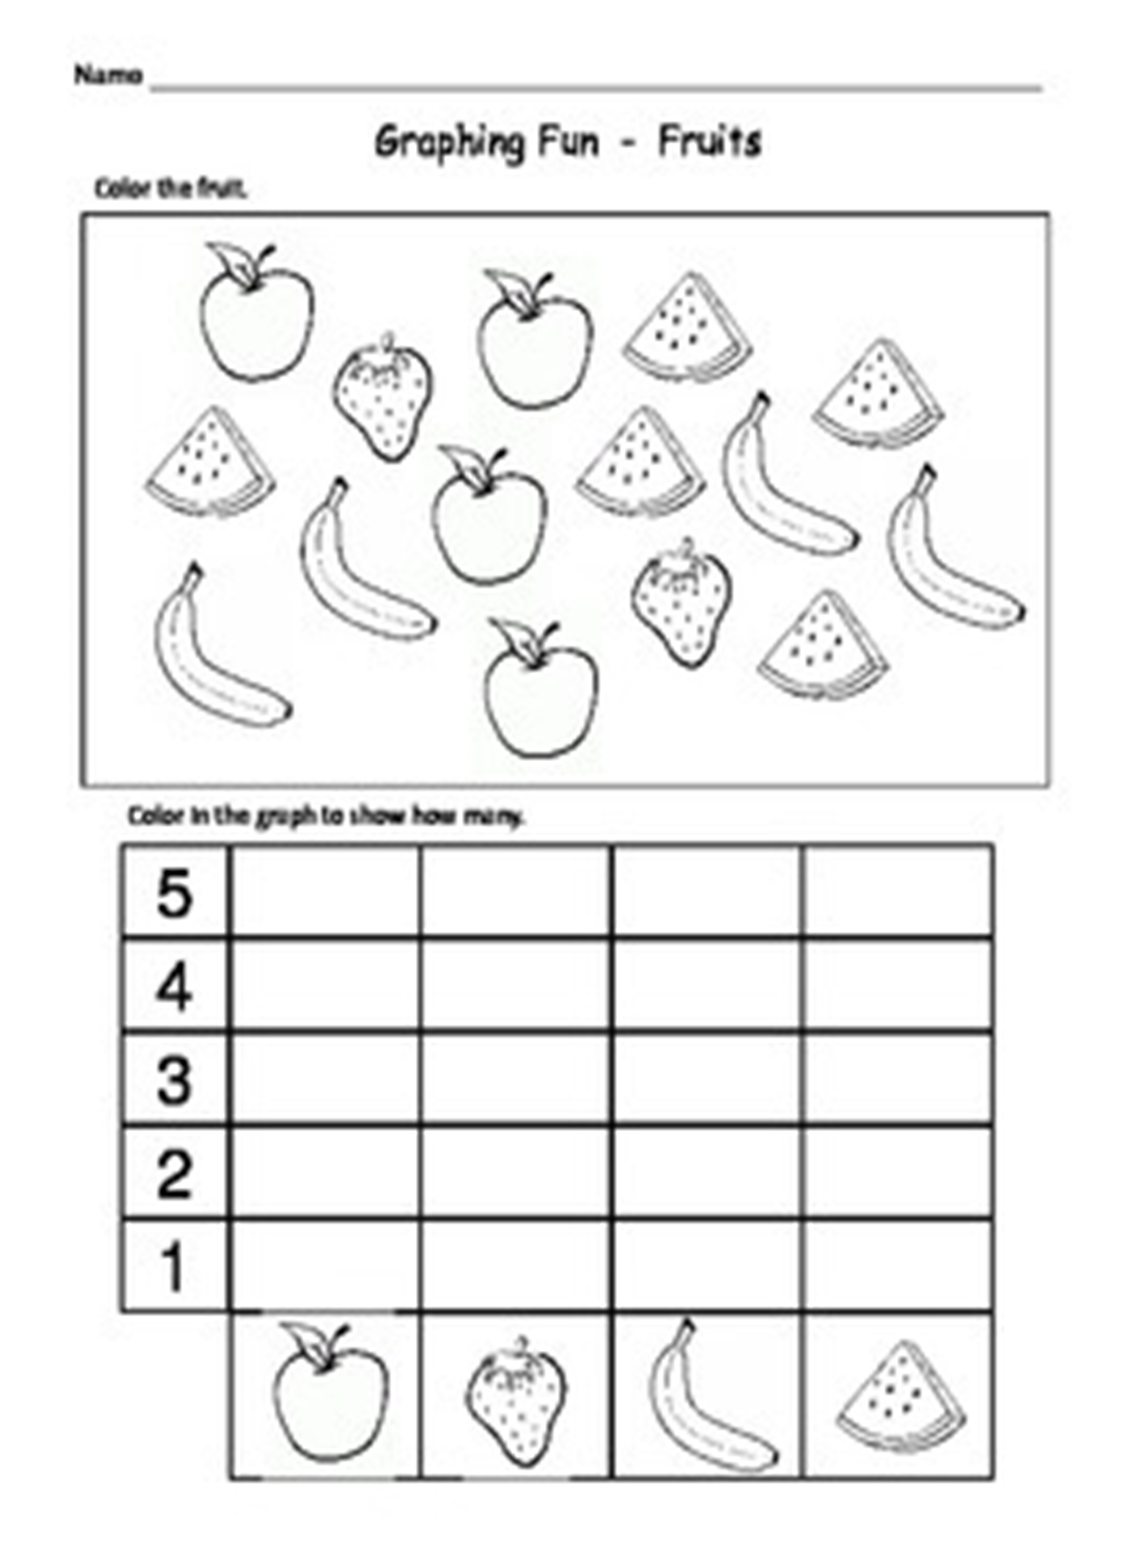 Classroom Teacher Can Use This Worksheet To Reinforce The